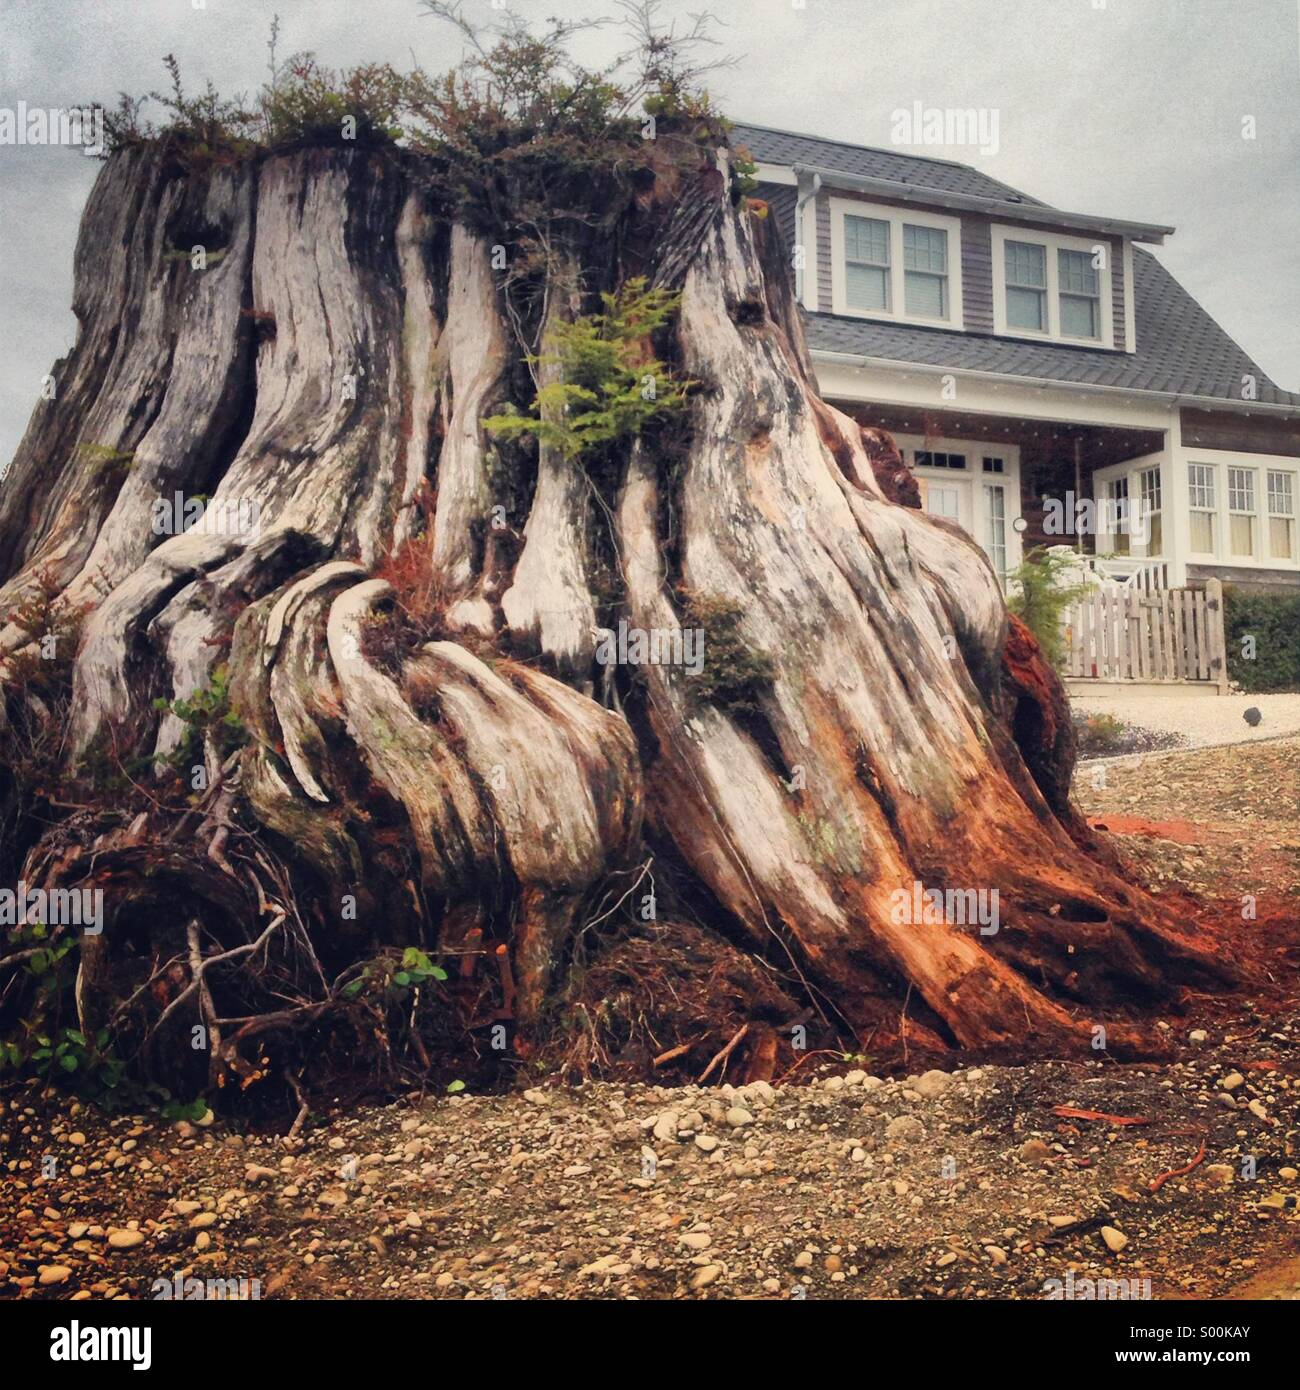 Old growth tree stump next to a newly built home - Stock Image